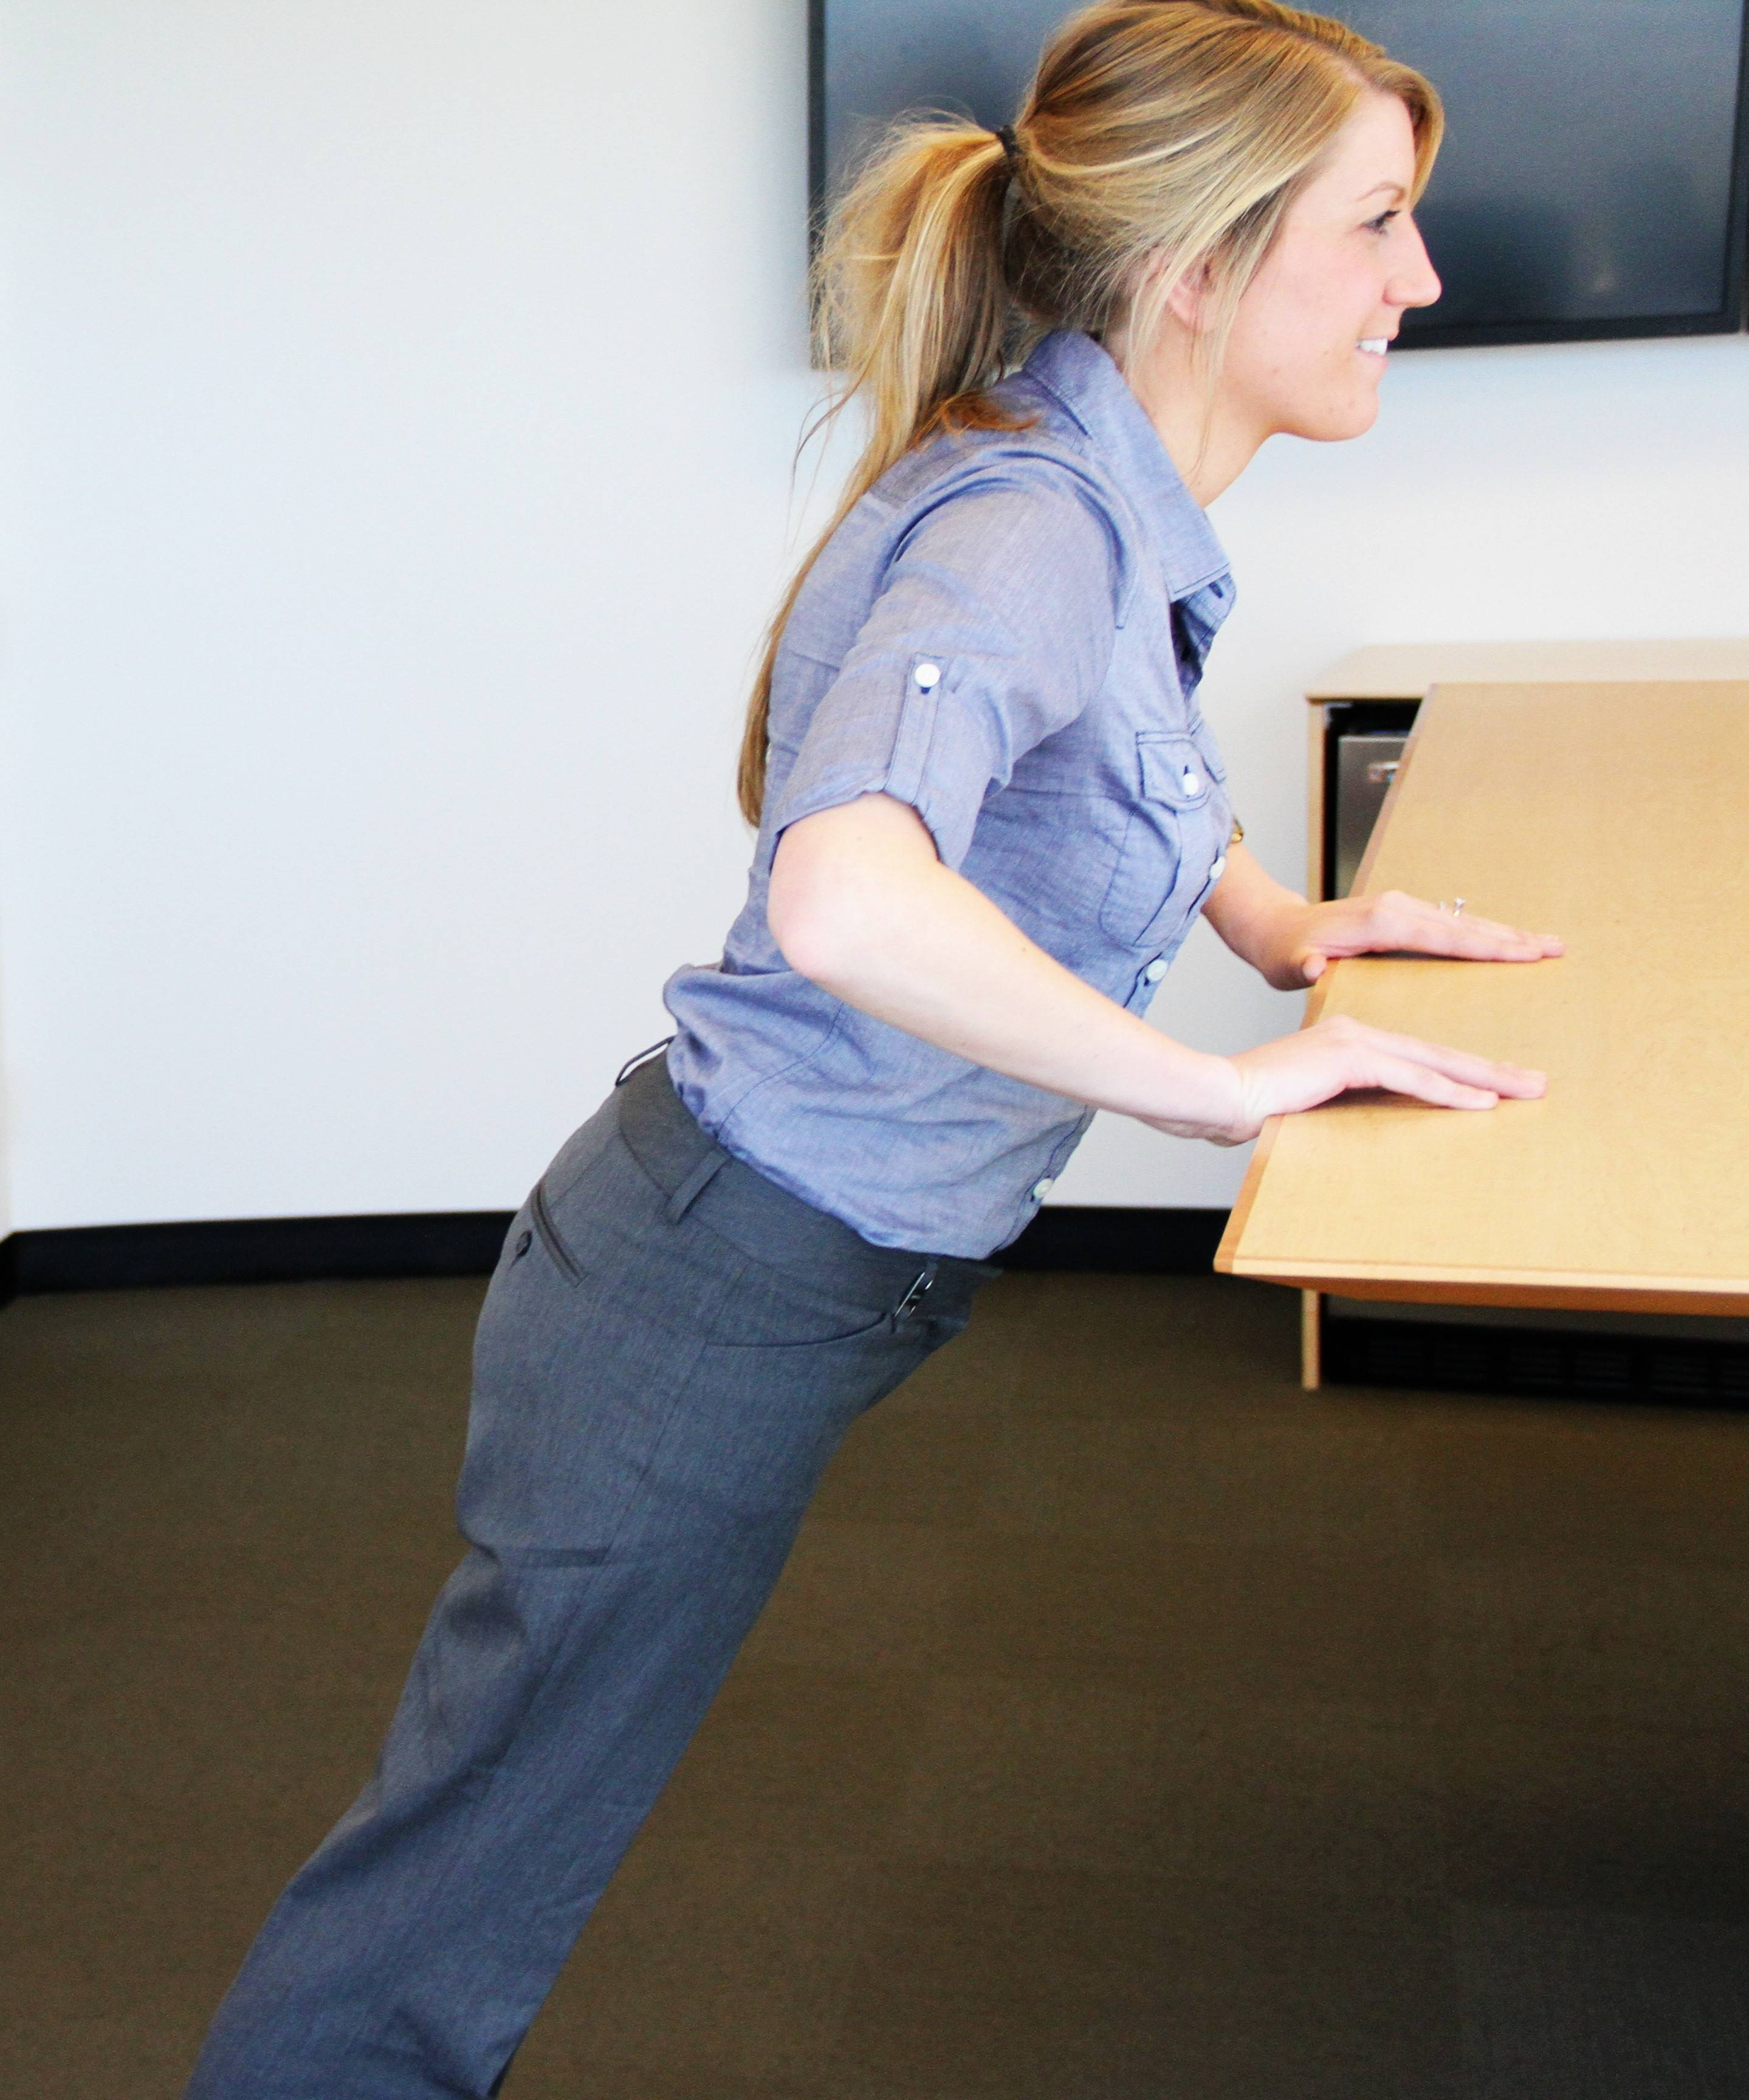 Jill Micklow, Wellness Specialist at Assurance, demonstrates that modified push-ups can be done anywhere in the office.